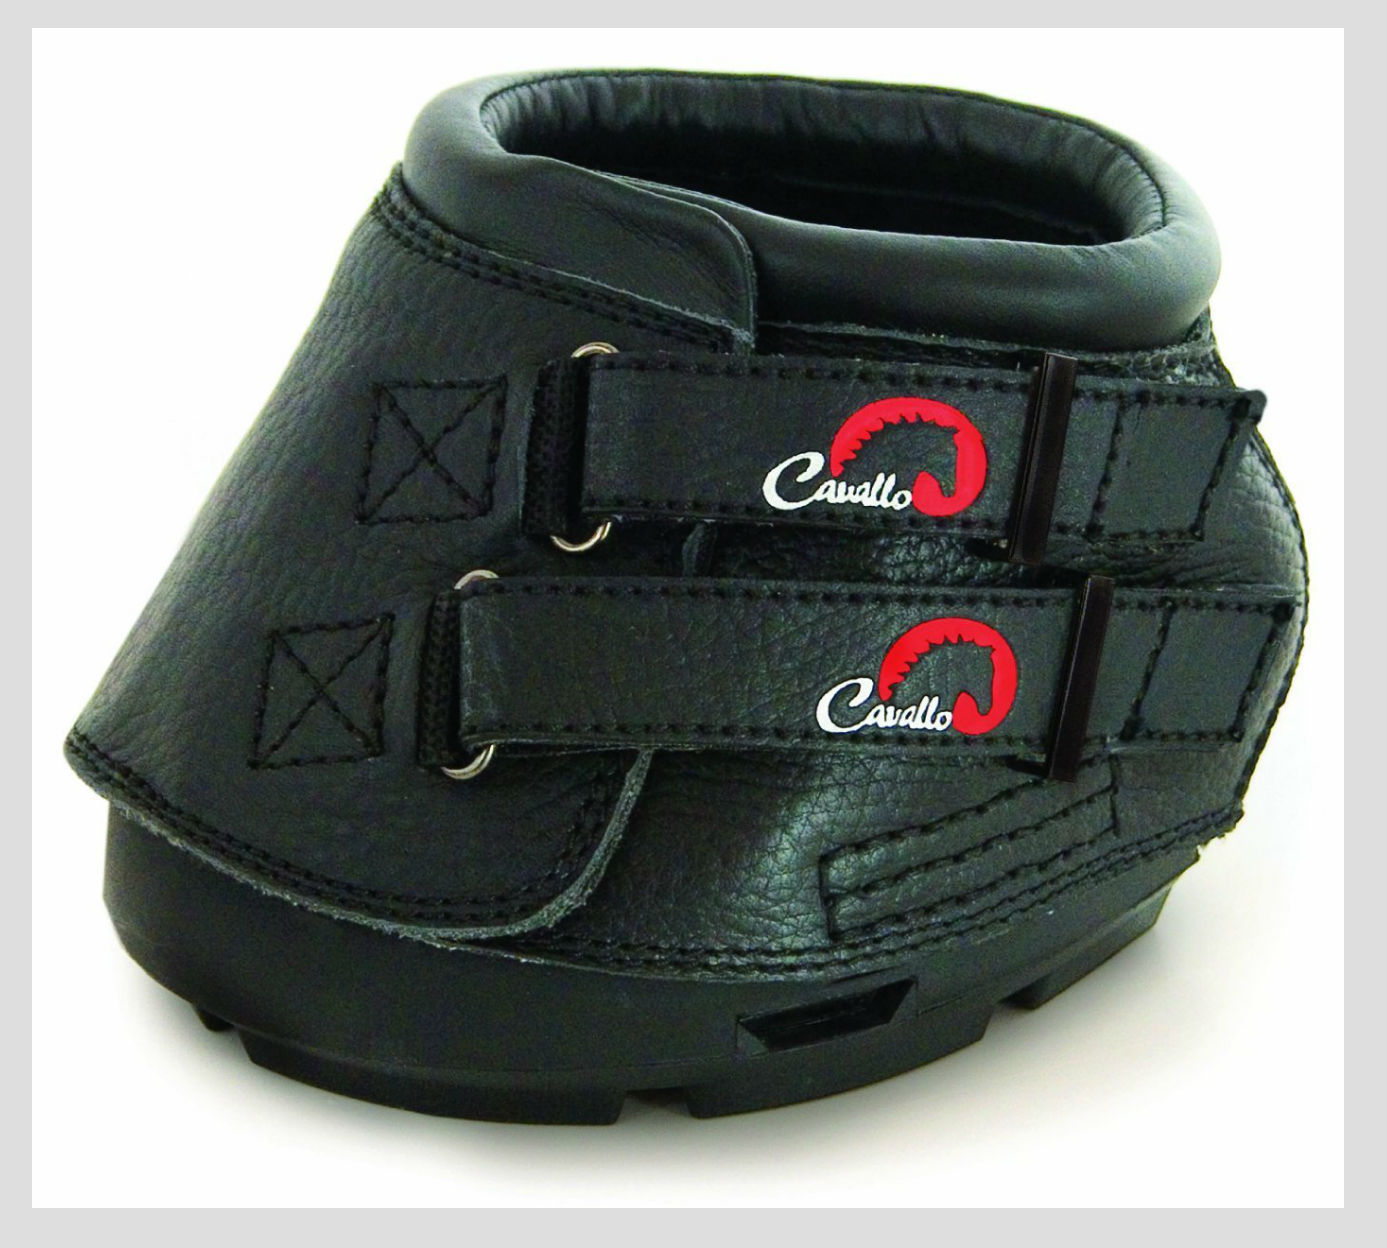 Cavallo Simple Hoof Boot for Horses